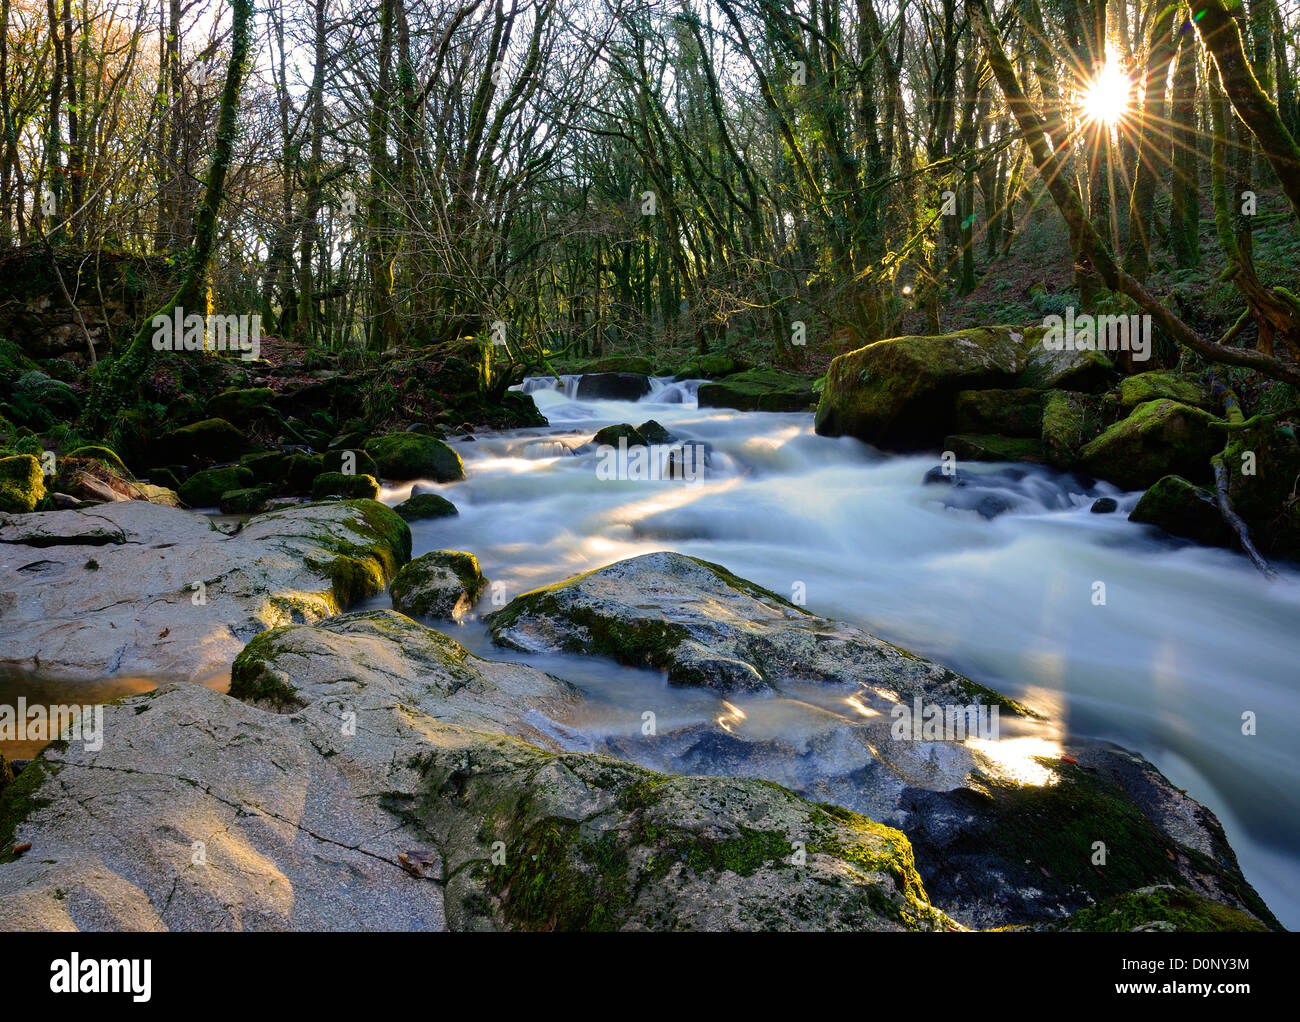 golitha falls on the river fowey, bodmin moor, cornwall, england, uk - Stock Image